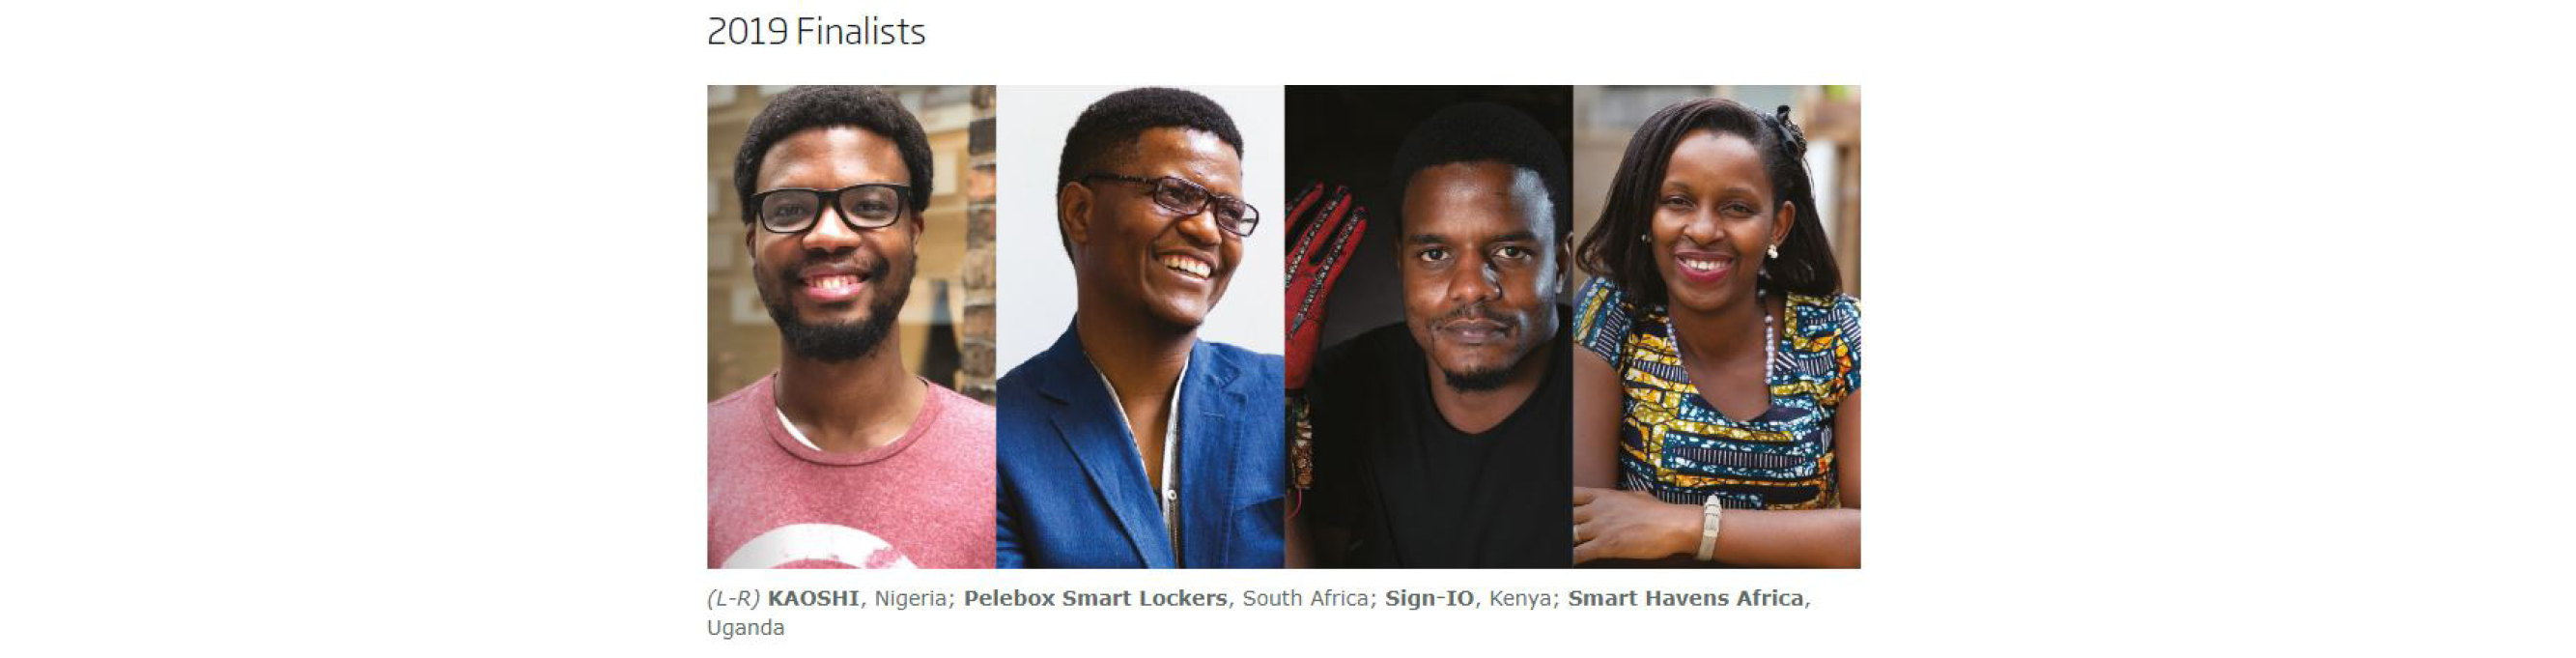 TOP ENGINEERING INNOVATORS ANNOUNCED FOR AFRICA PRIZE FINALS